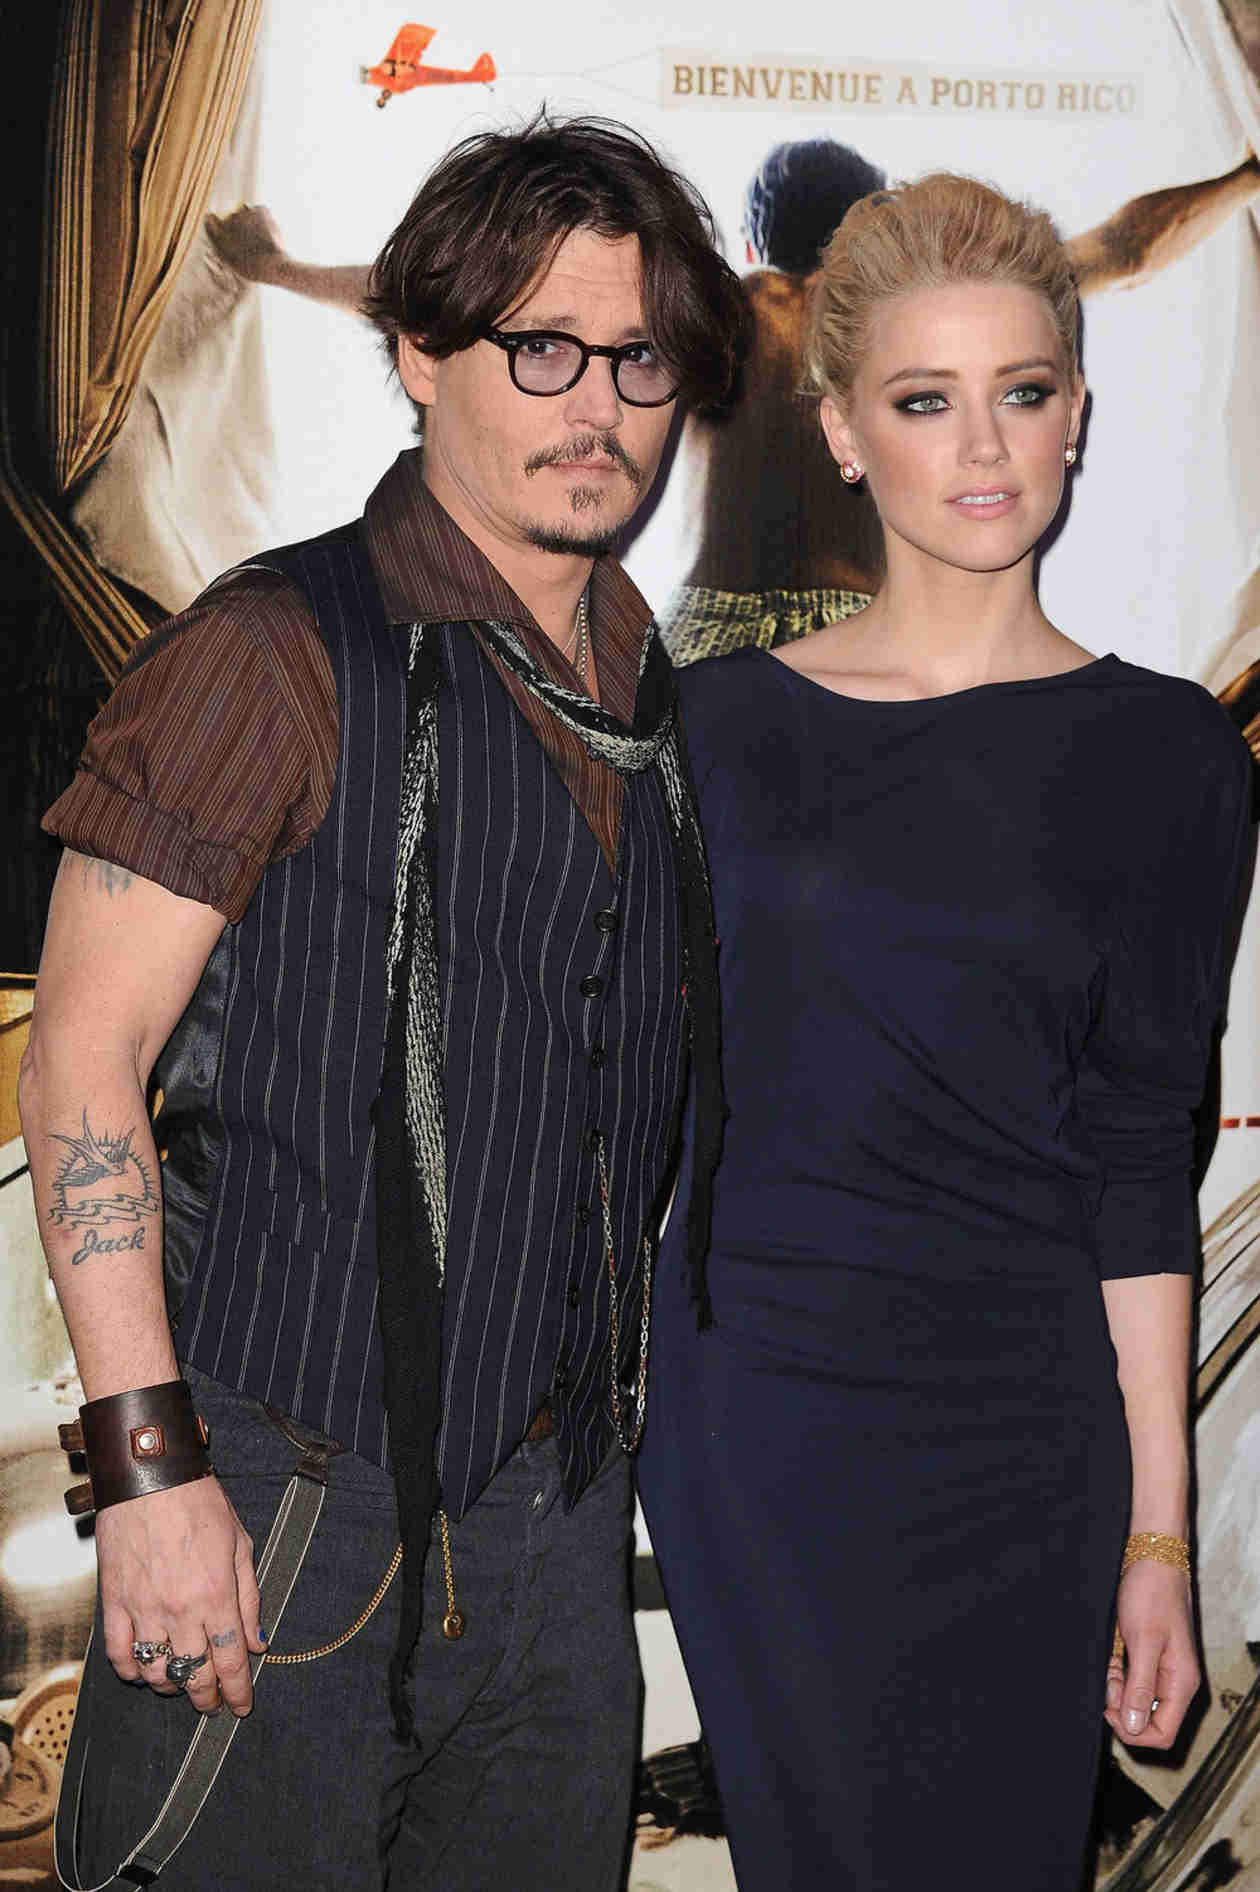 Johnny Depp and Amber Heard's Engagement Party — Which Celebs Were There?